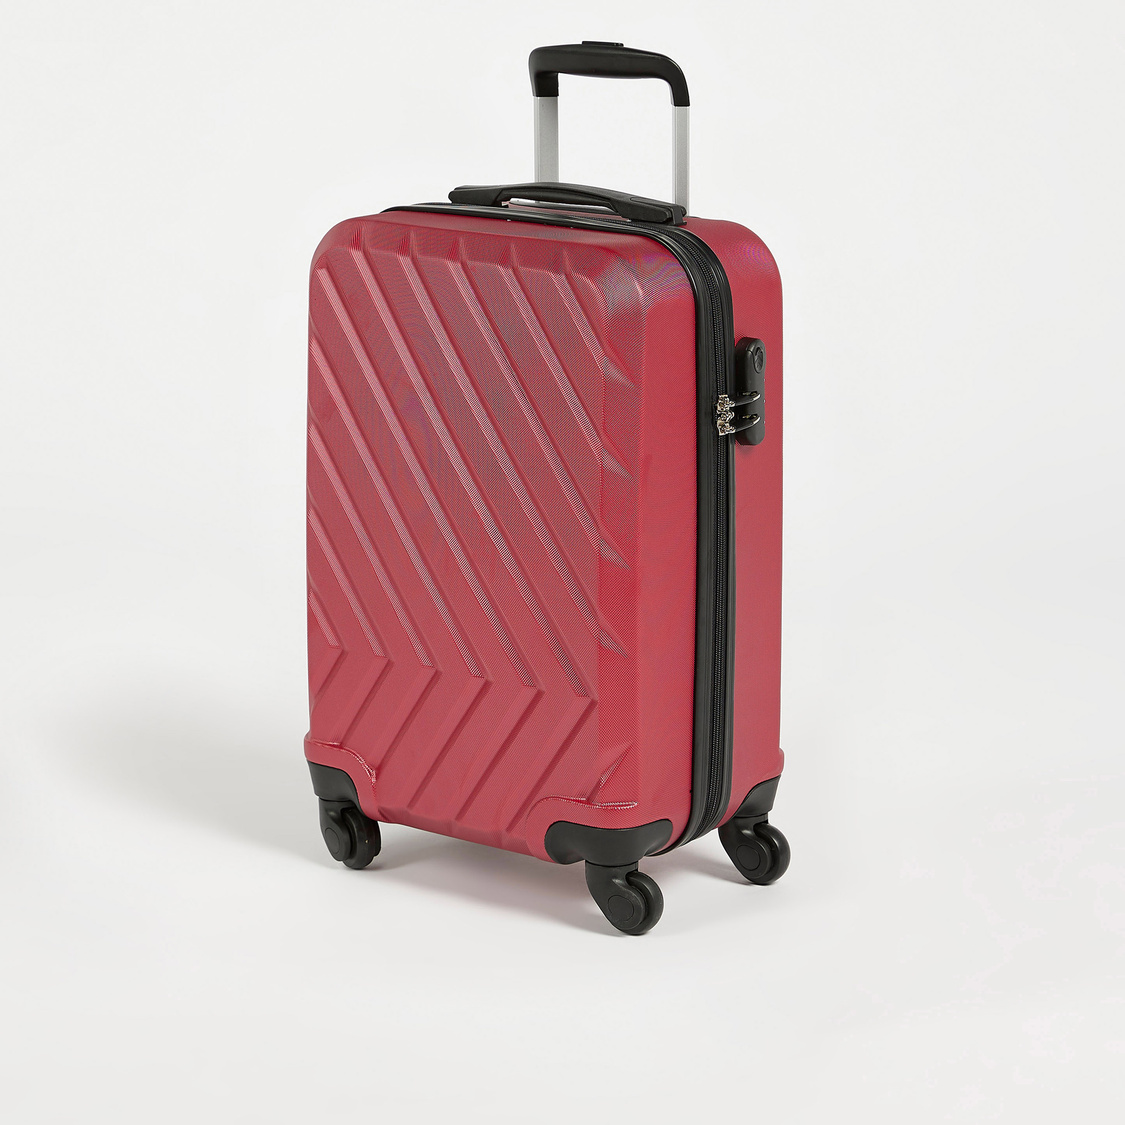 Textured Suitcase with Retractable Handle and Wheels - 38x23x55 cms